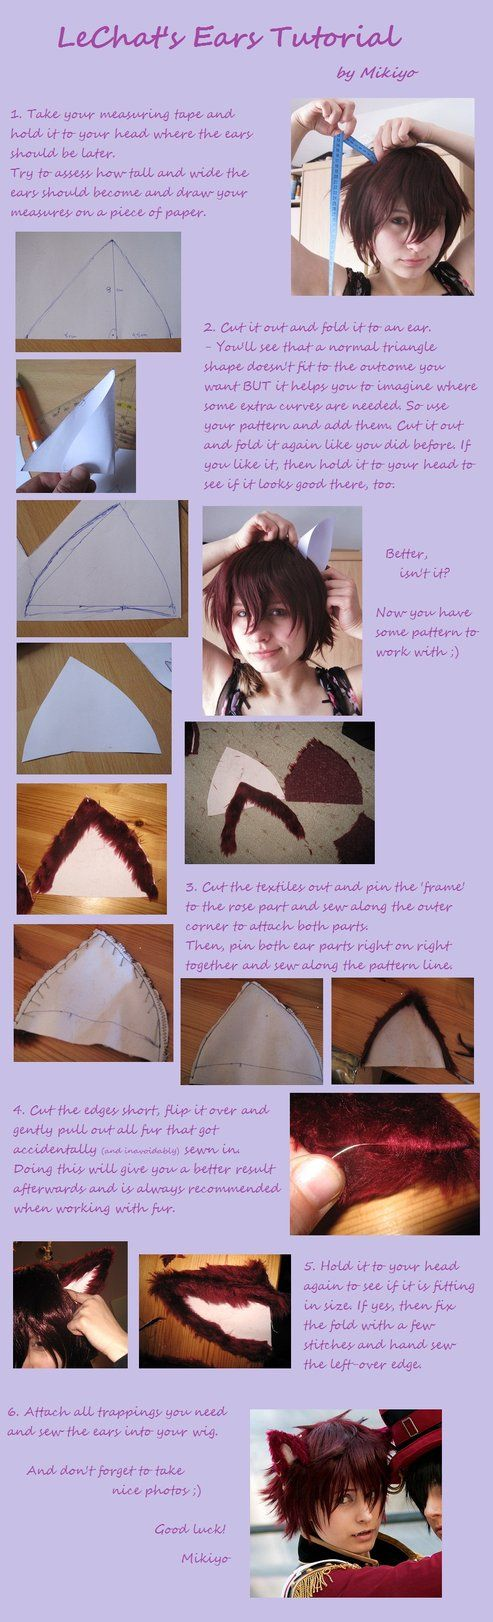 Tutorial LeChat's Ears by MikiyoOo by MikiyoOo on DeviantArt